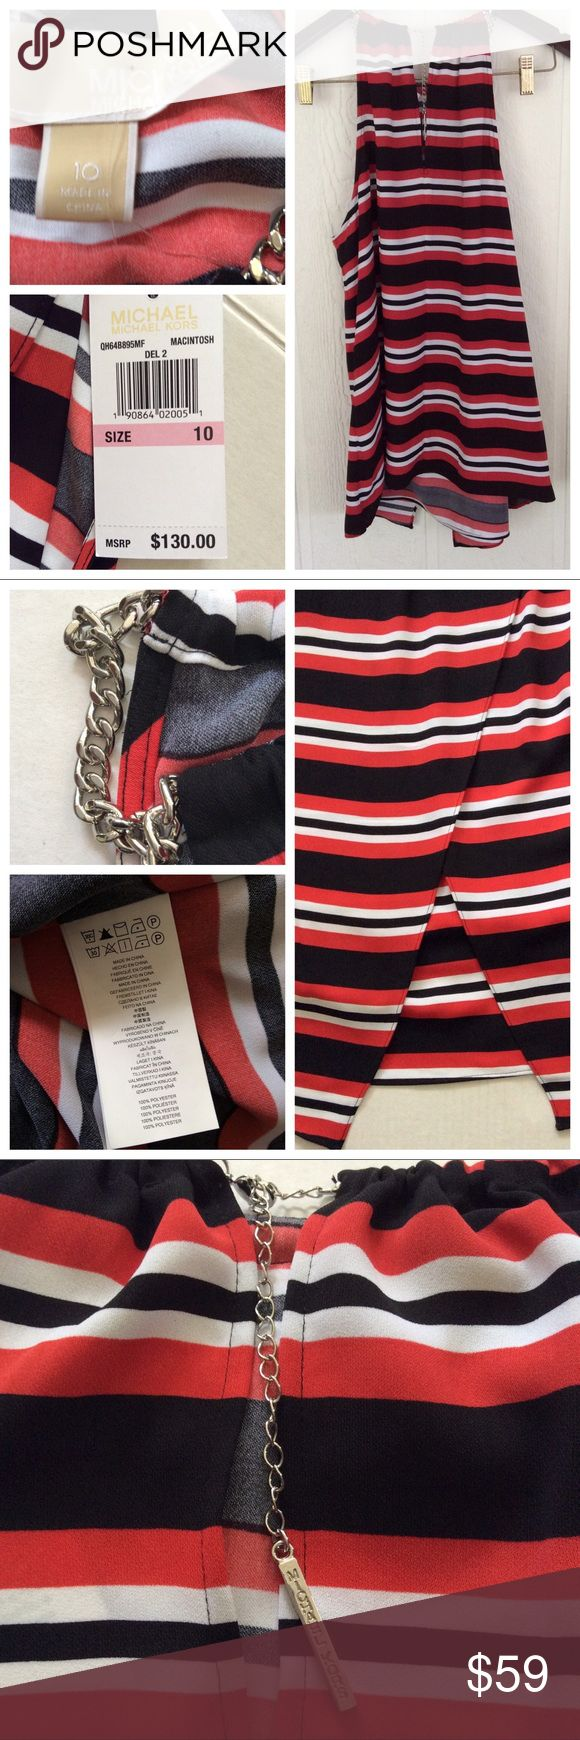 NWT MICHAEL KORS NECKLACE CHAIN TOP A colorful stripe print lends a sense of romance to this flowy top. Detailed with silver-tone chain trim at the neck with a logo detailed block that hangs in the keyhole cutaway at back, super sexy and flirty cutaway front panel for ultra feminine chic!   It's the perfect way to enliven a pair of white trousers or relaxed boyfriend jeans. Michael Kors Tops